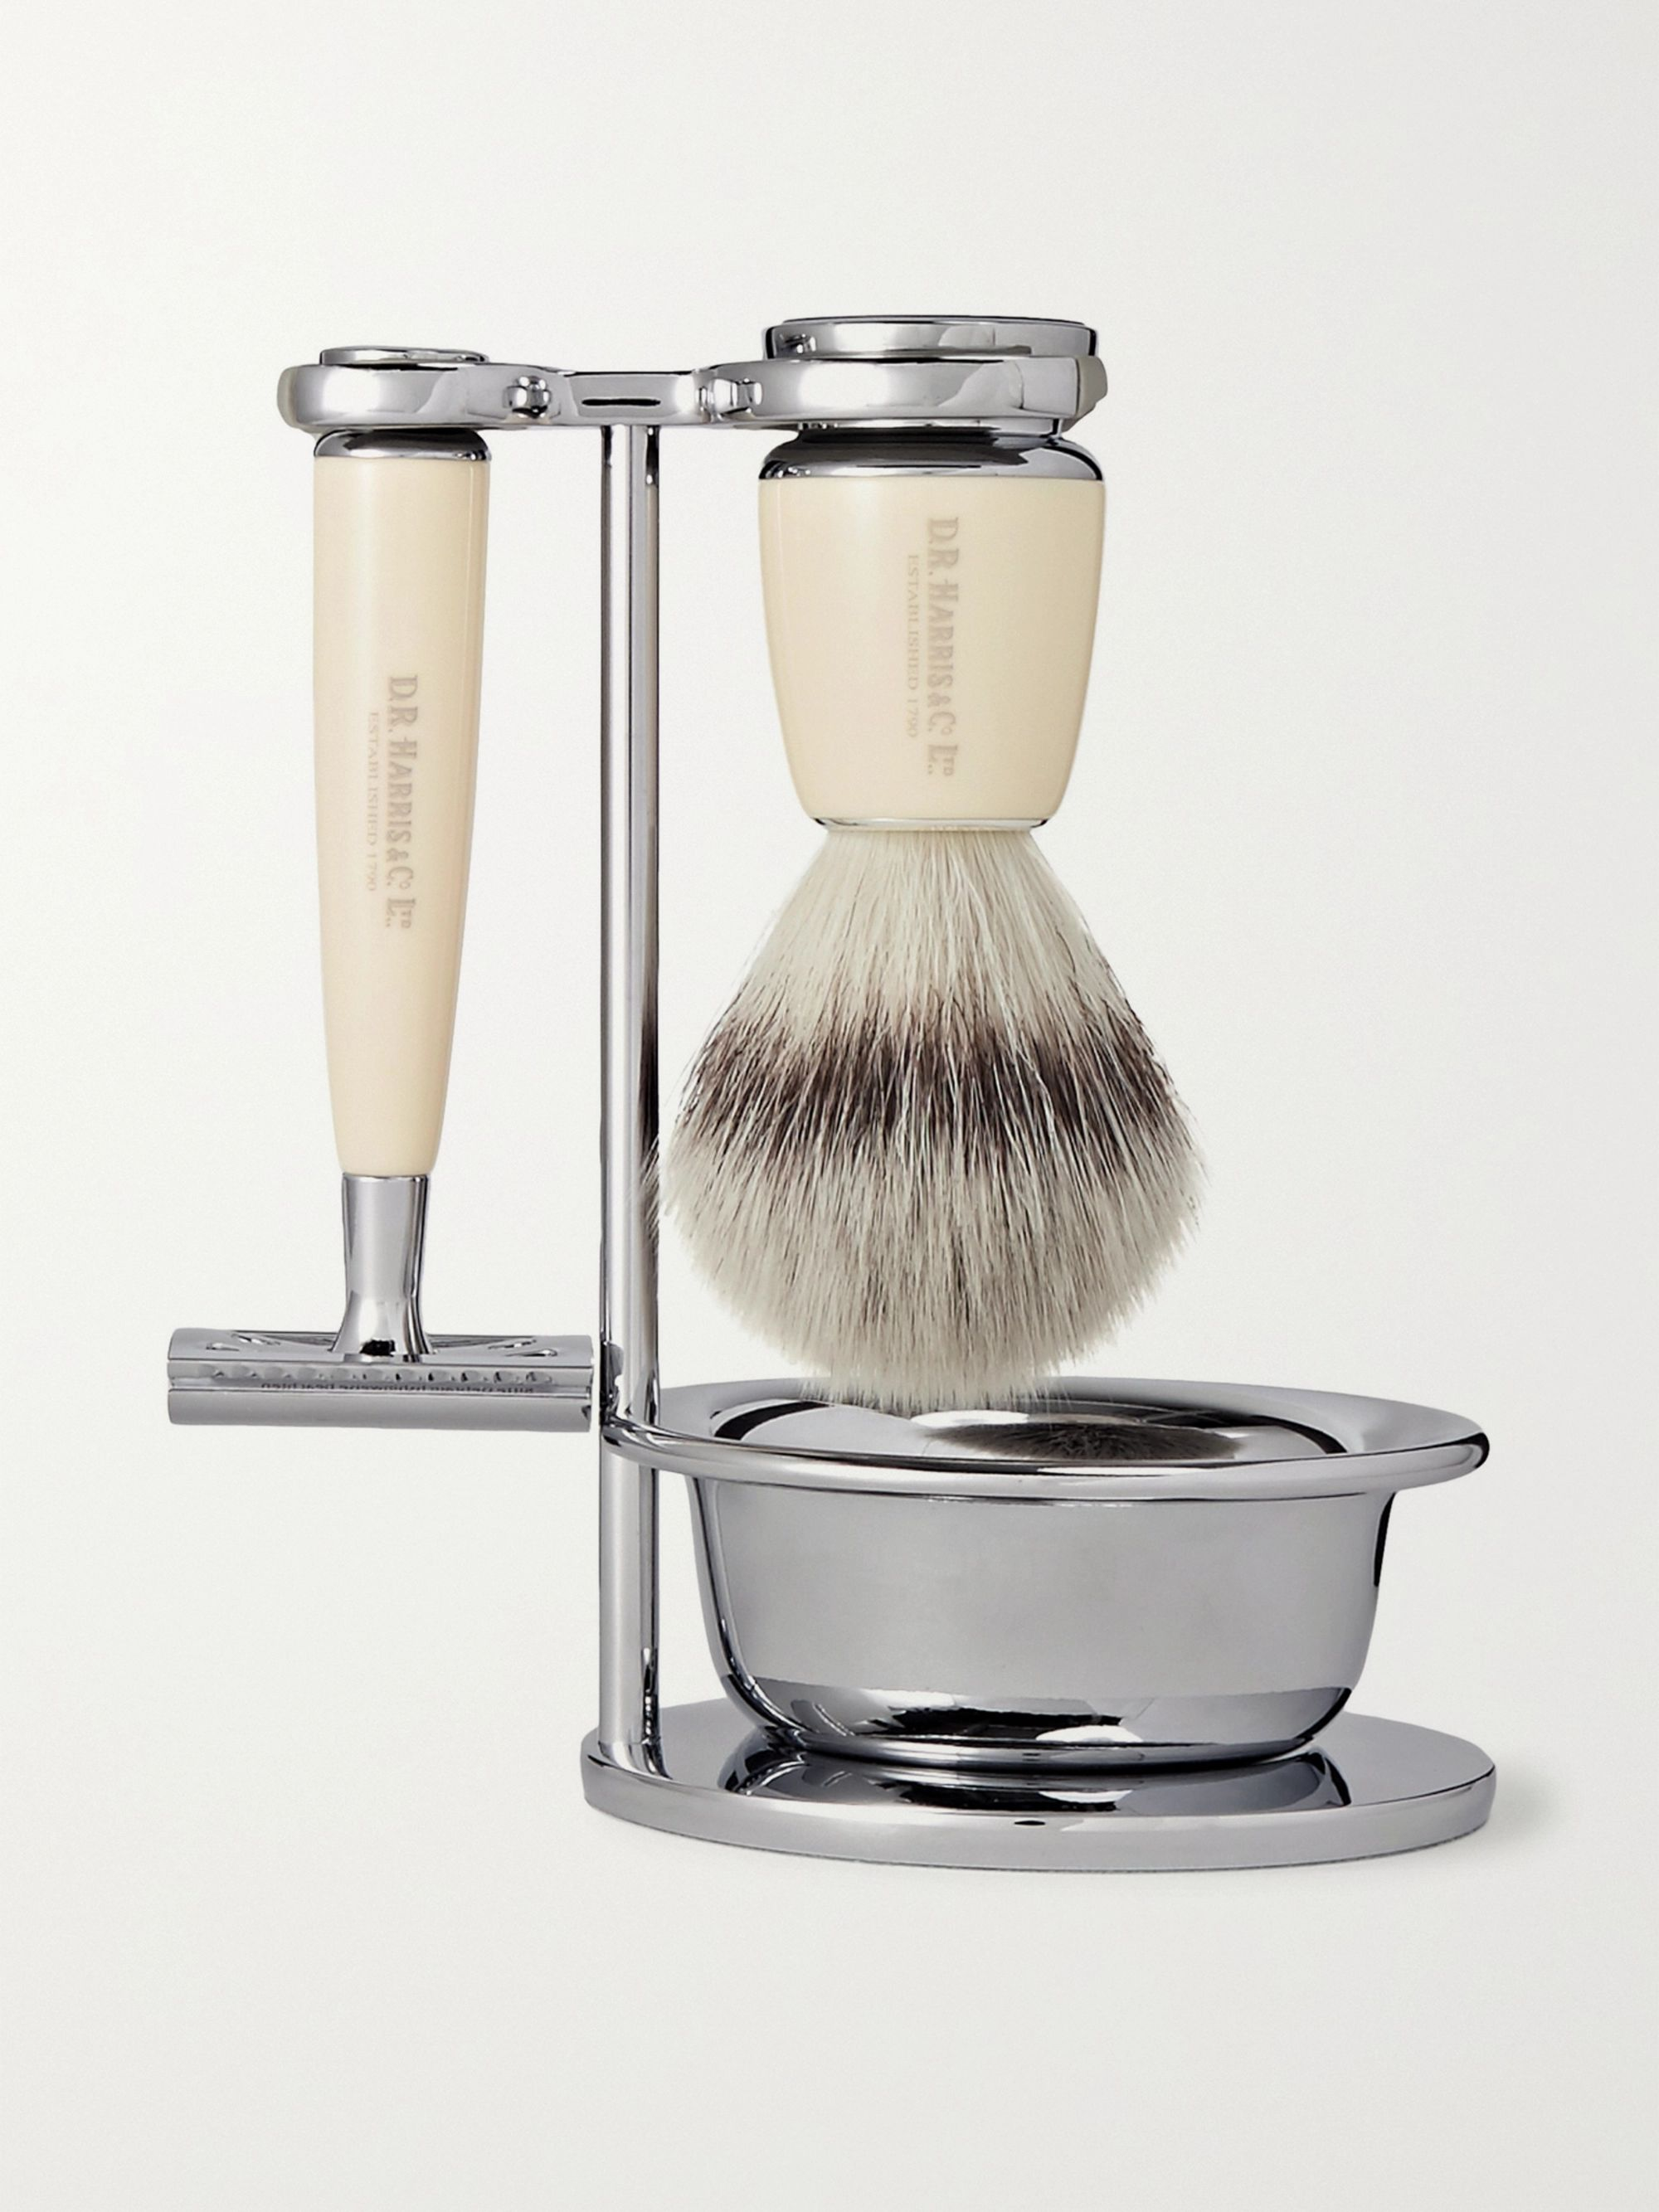 D R Harris Safety Chrome and Resin Four-Piece Shaving Set